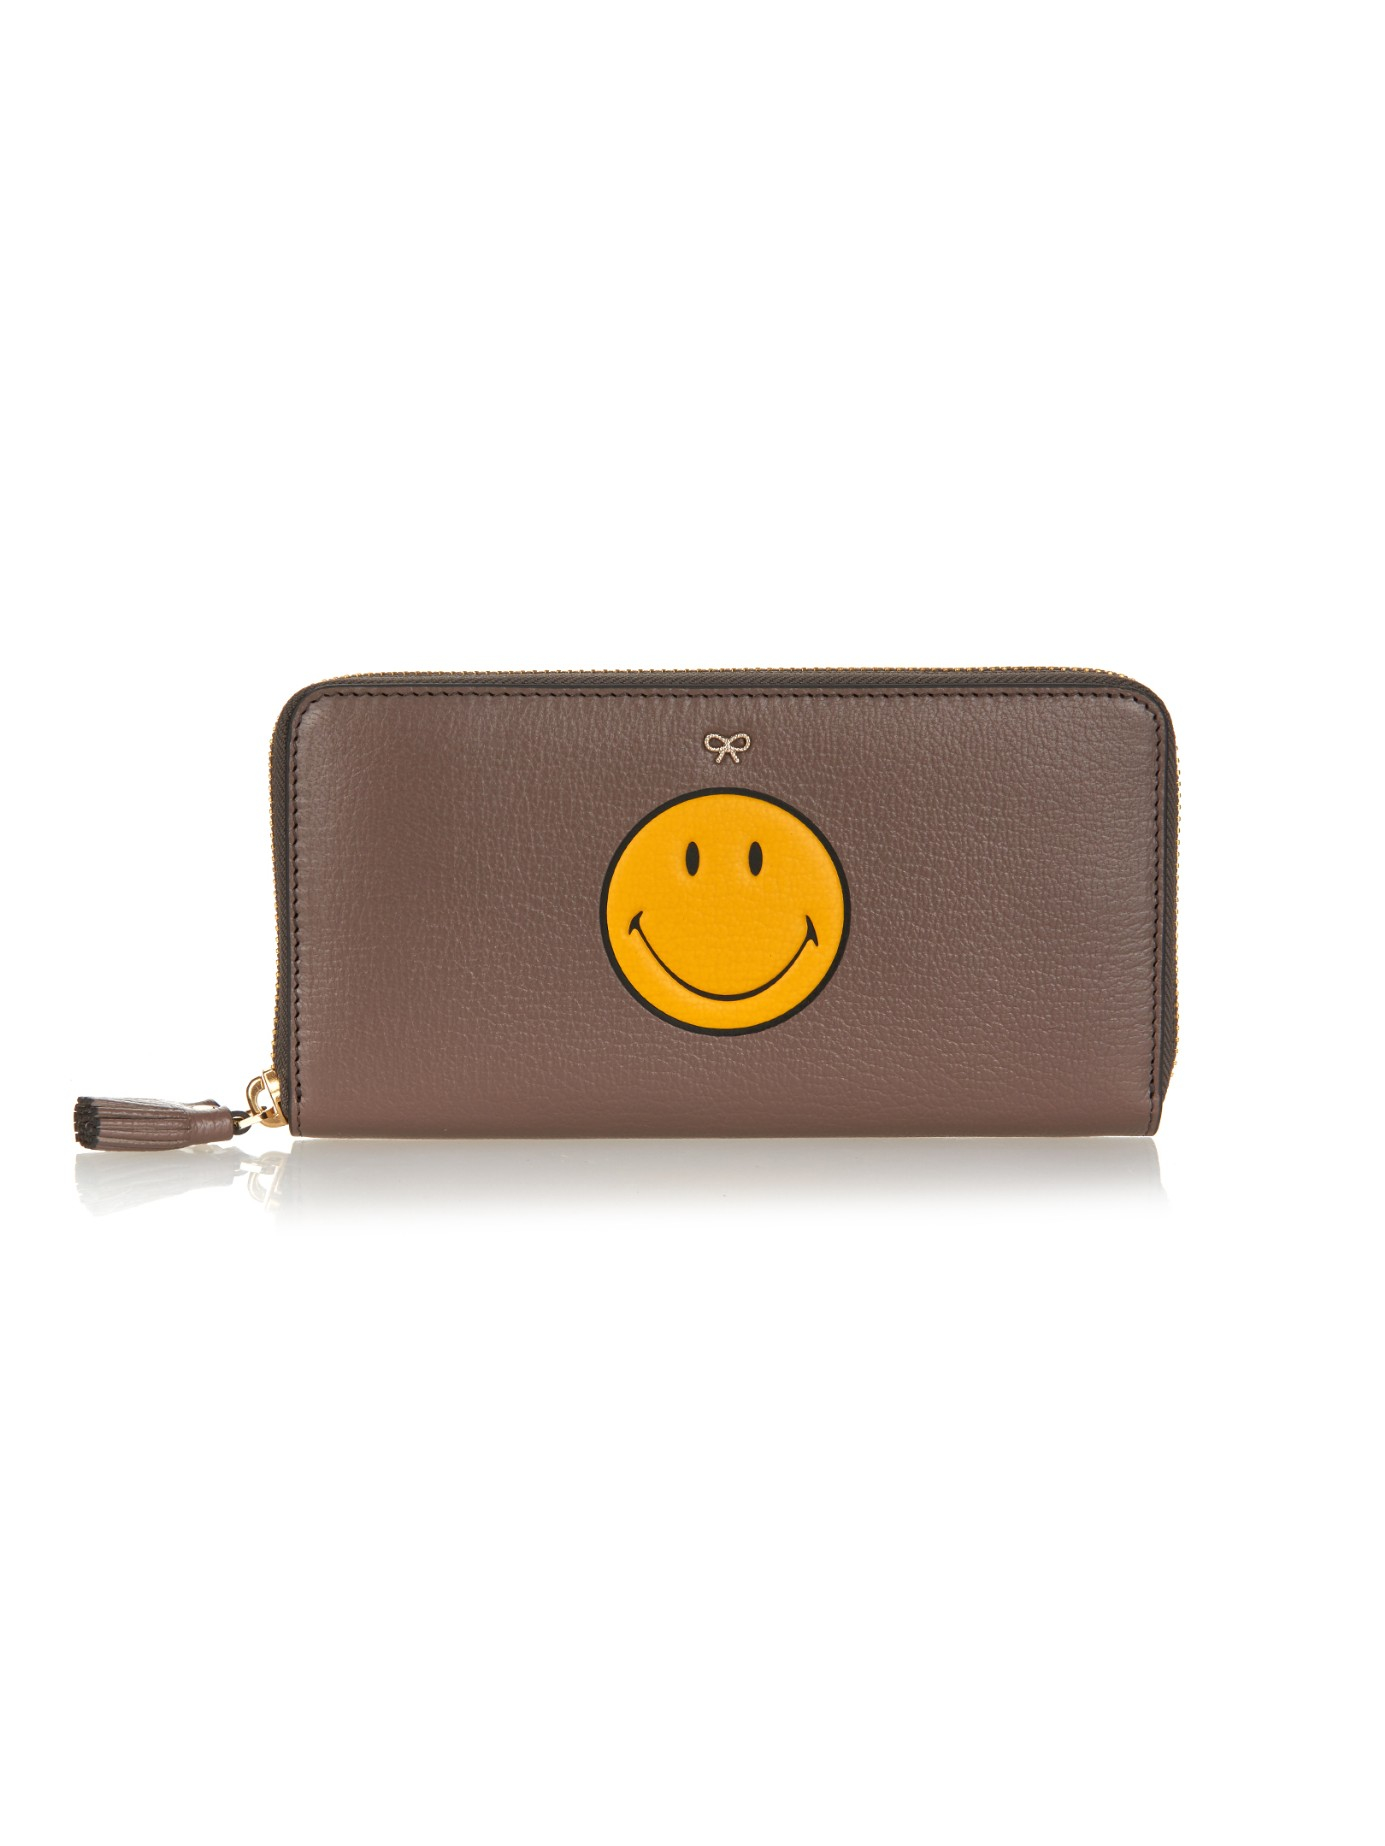 Anya Hindmarch Portefeuille Smiley ZLHPLsl